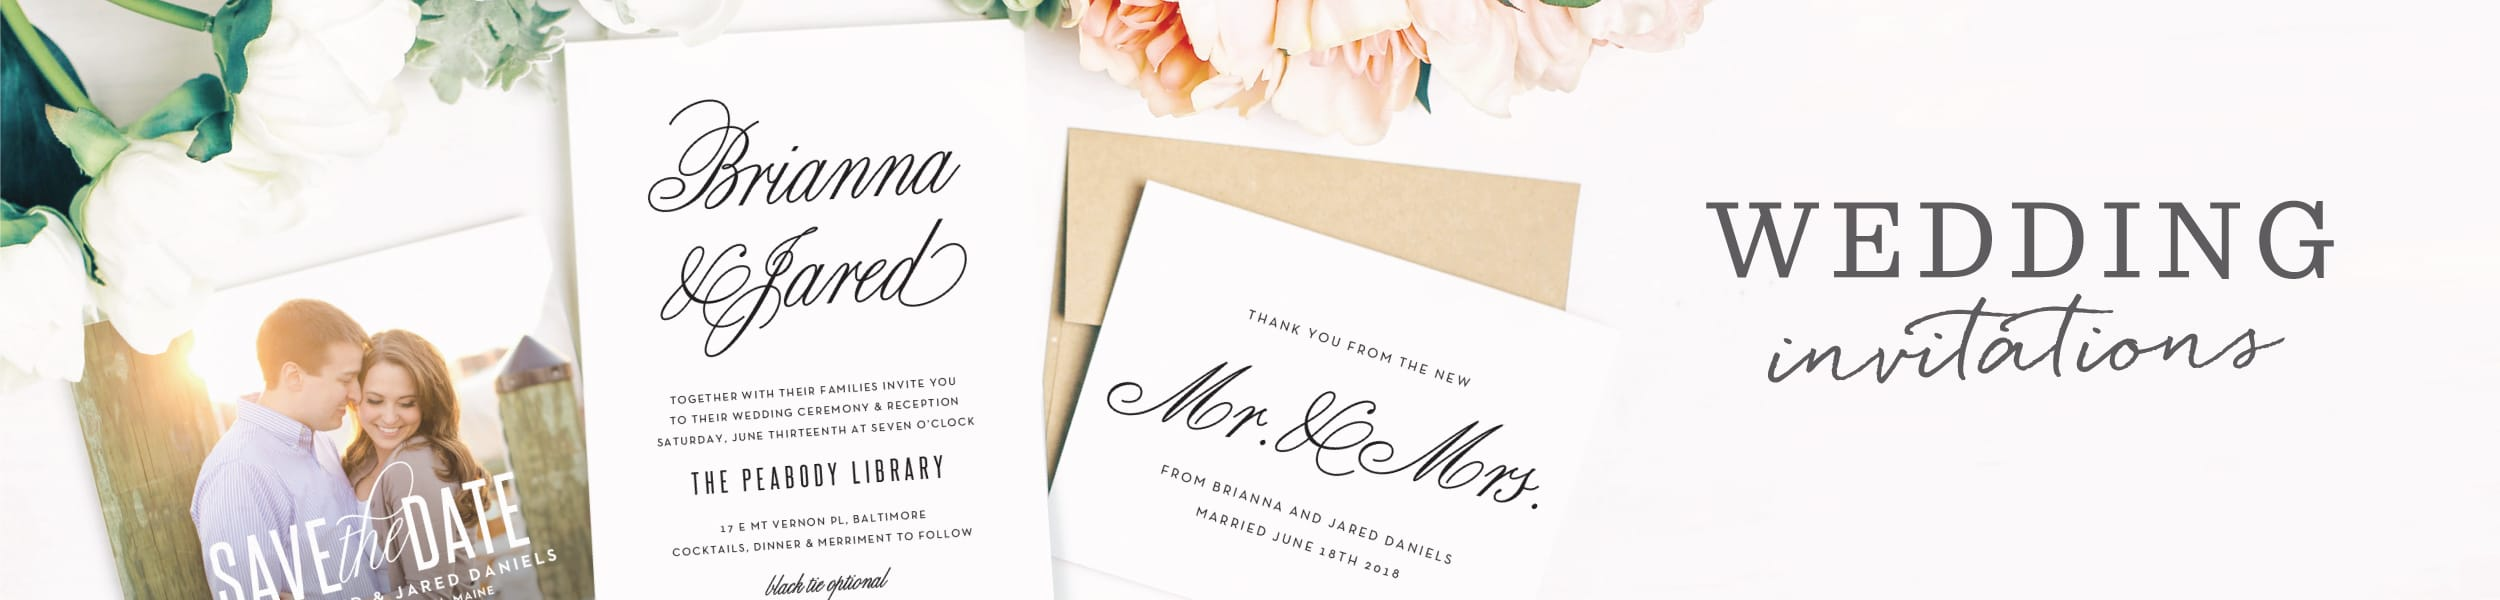 Utah Wedding Invitations | Match Your Color & Style Free! - Basic Invite